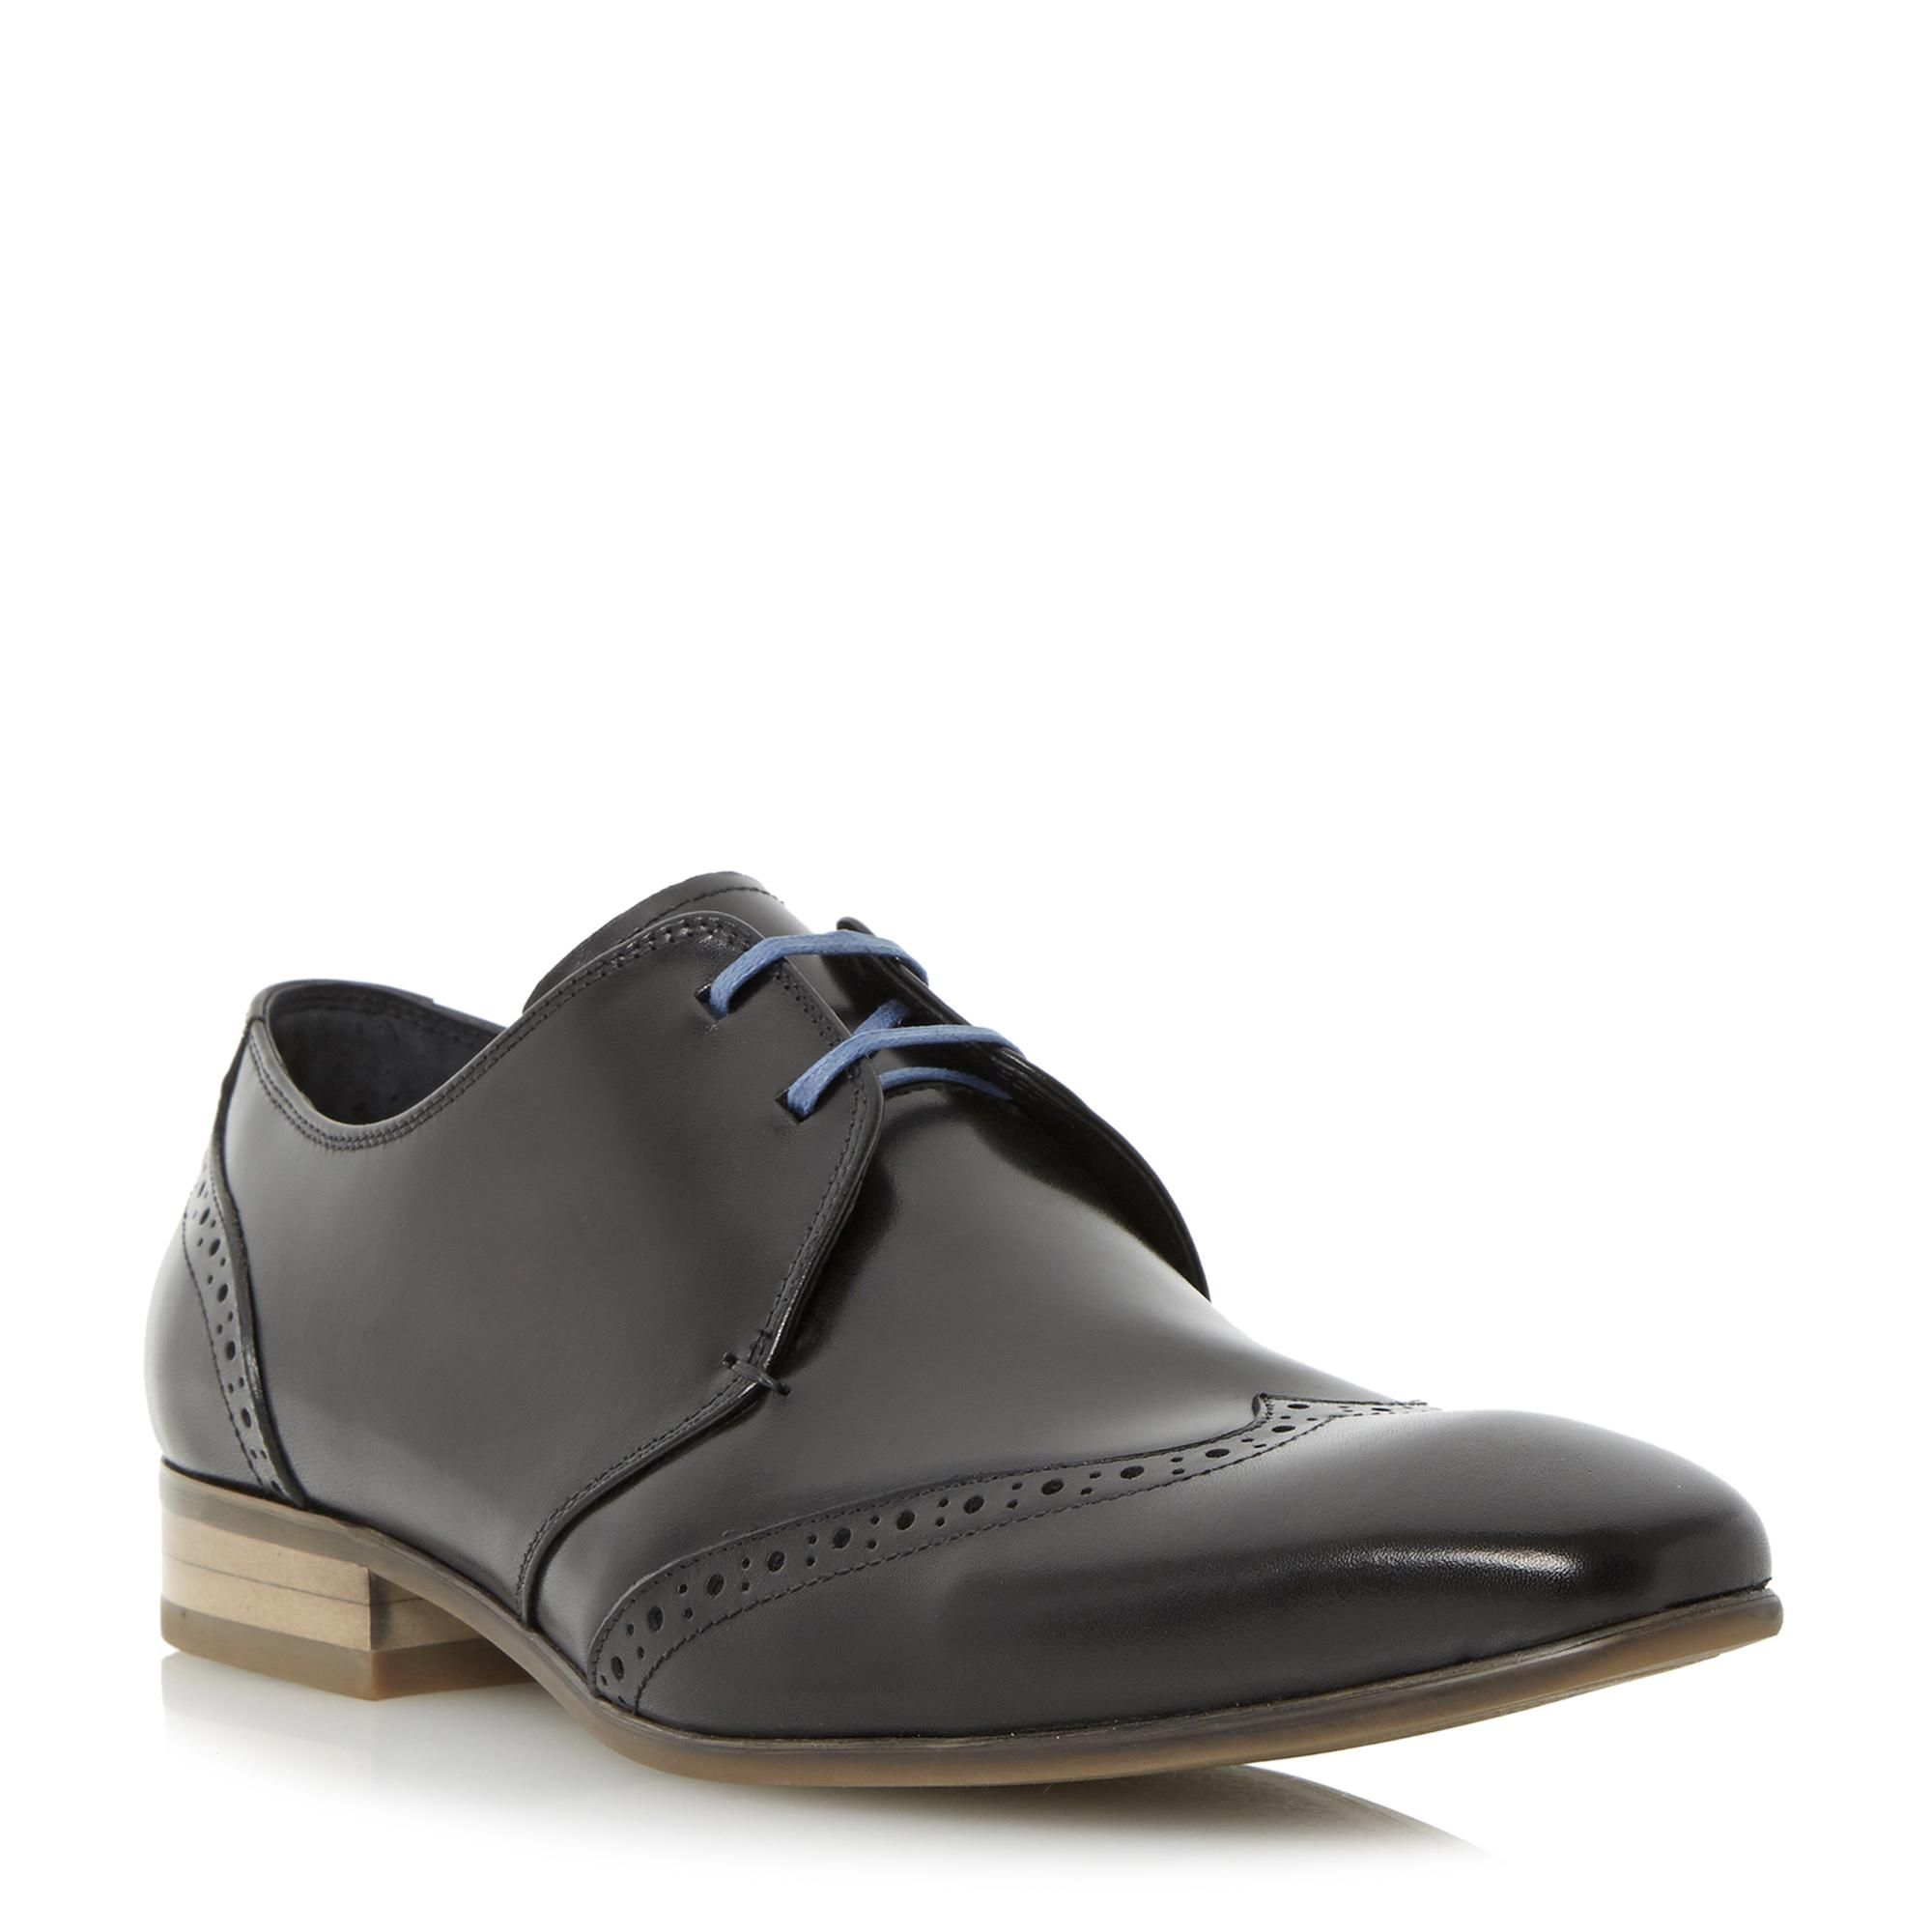 b48ff86aefd74b DUNE MENS ROSCOE - Leather Two-Eye Wingtip Derby Shoe - black   Dune Shoes  Online US11 UK10